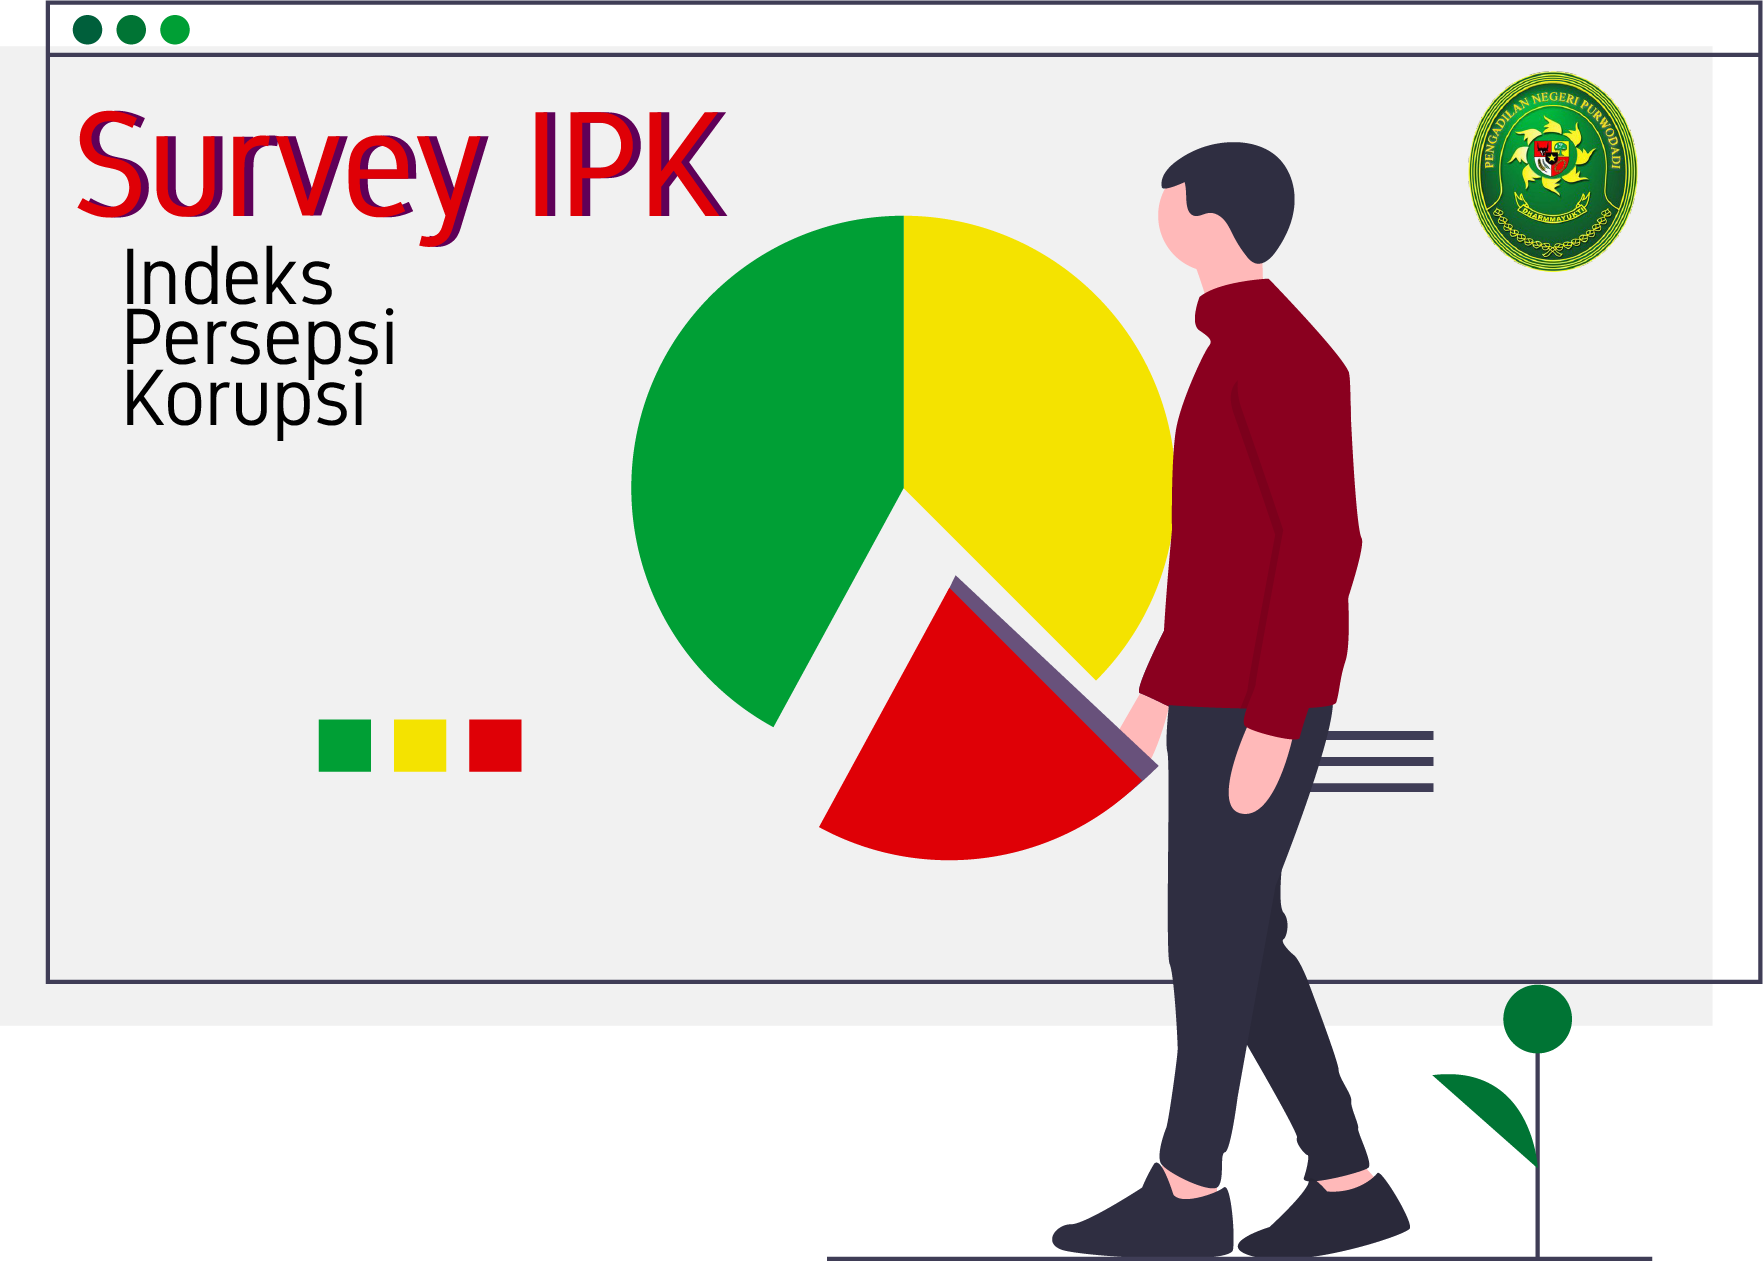 survey ipk icon